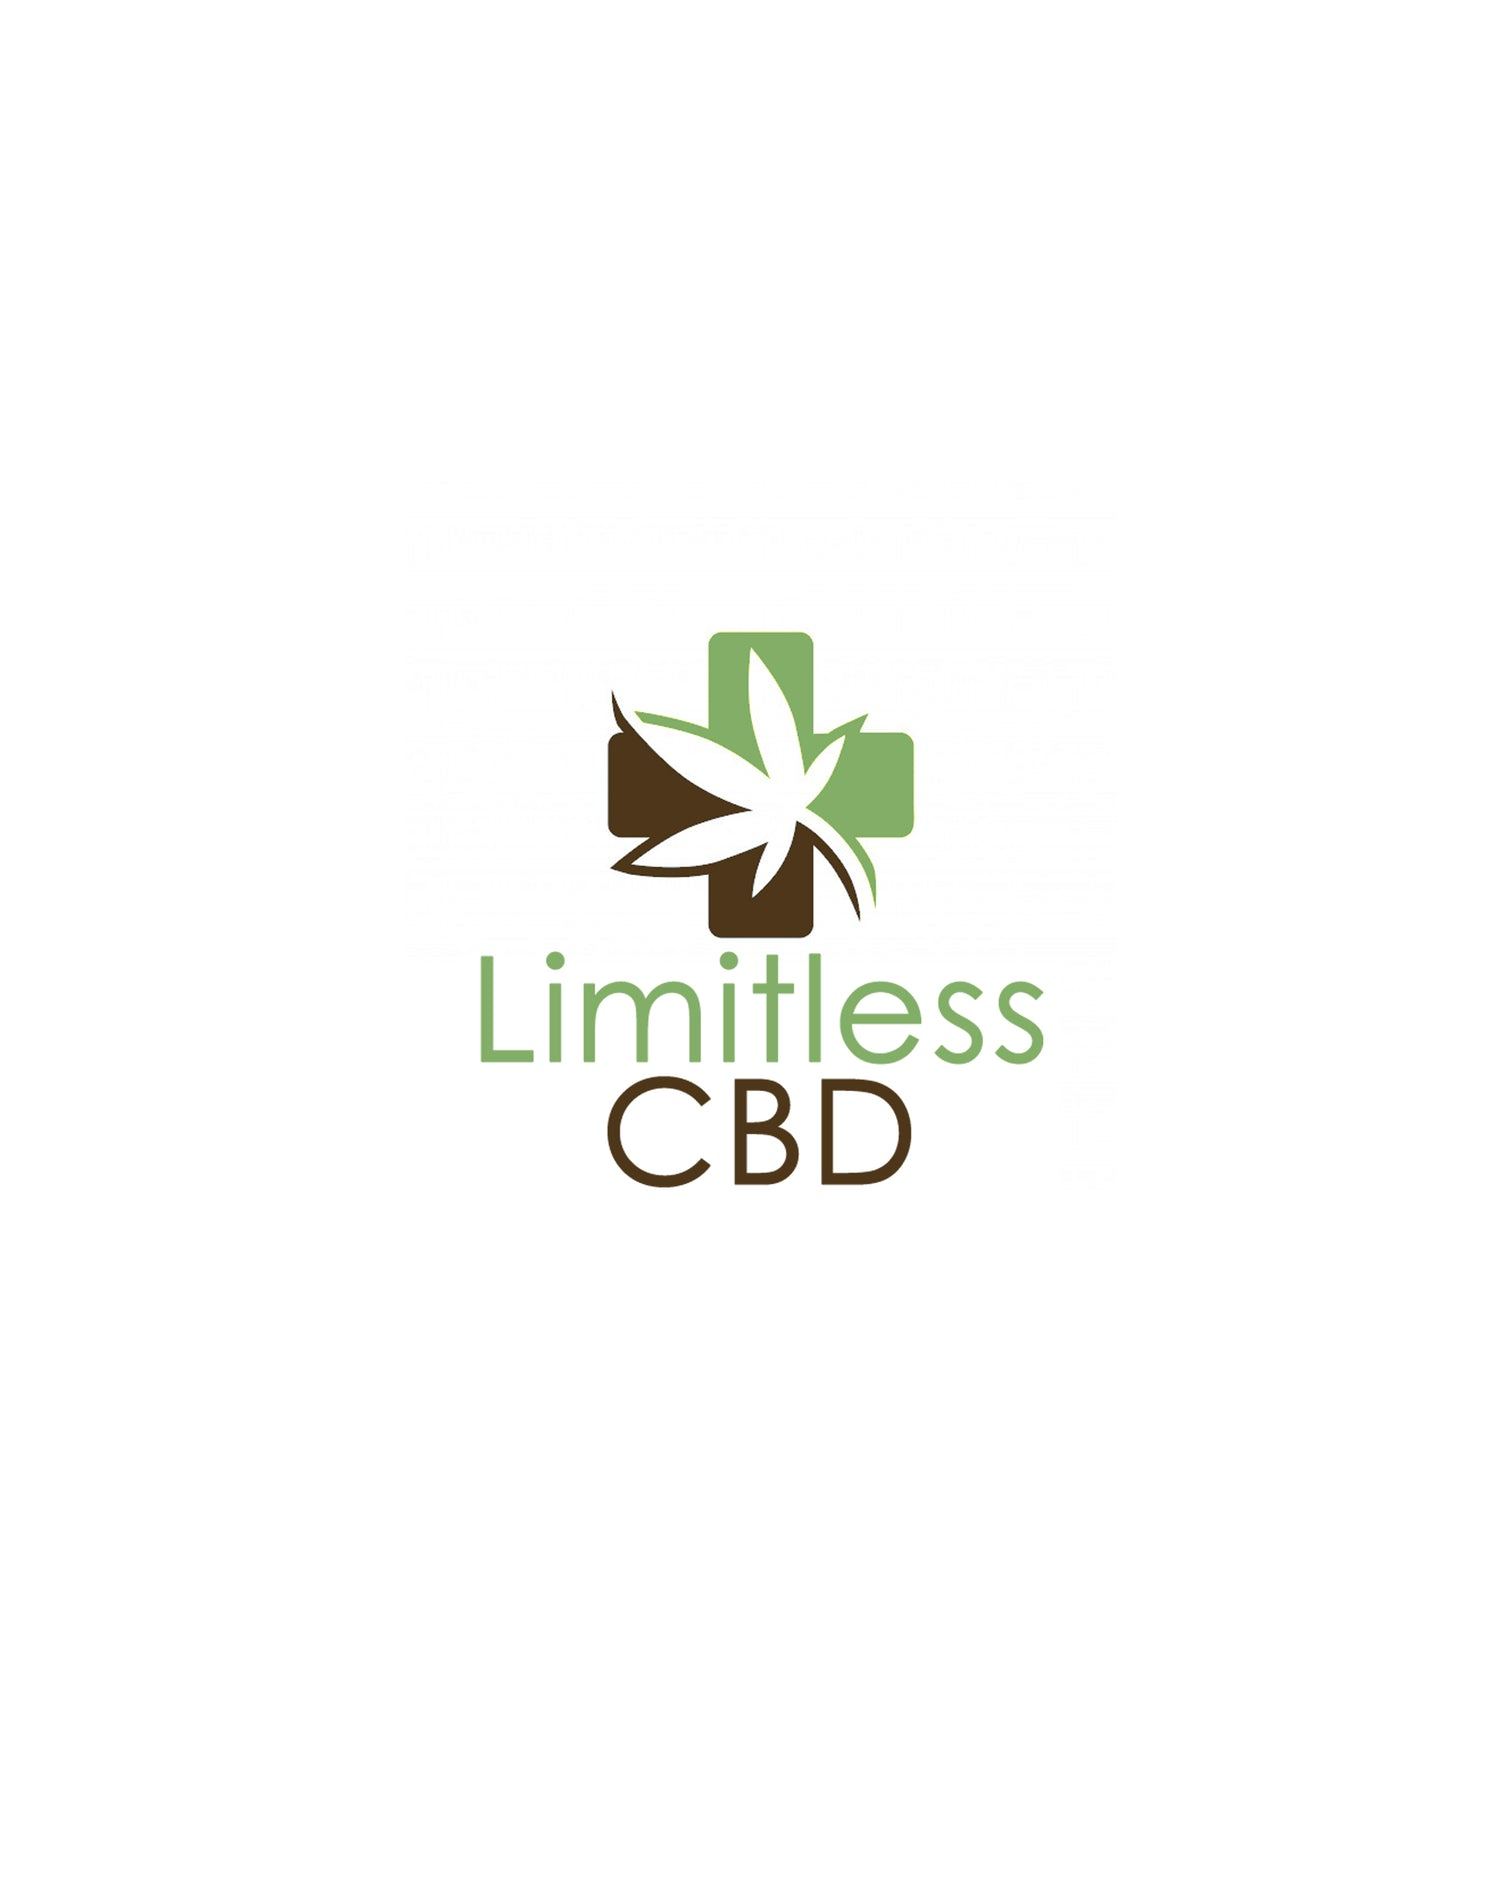 Limitless CBD Coupons and Promo Code